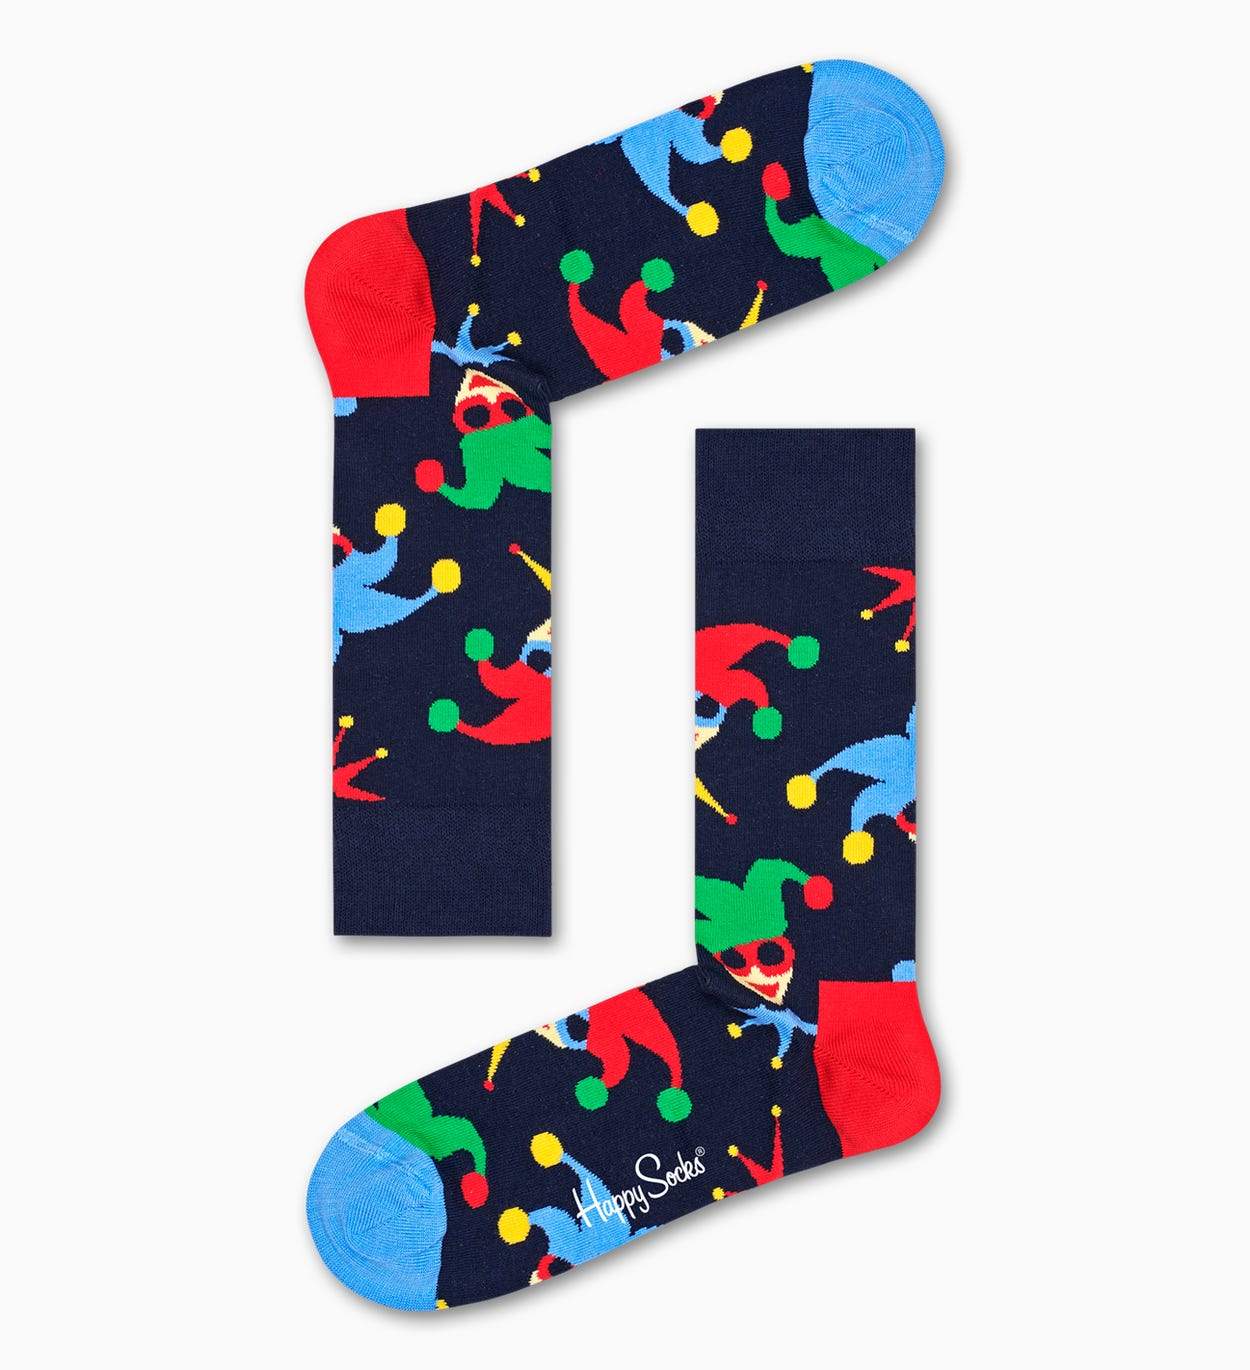 Carnival style: Masquerade Sock - dark blue | Happy Socks